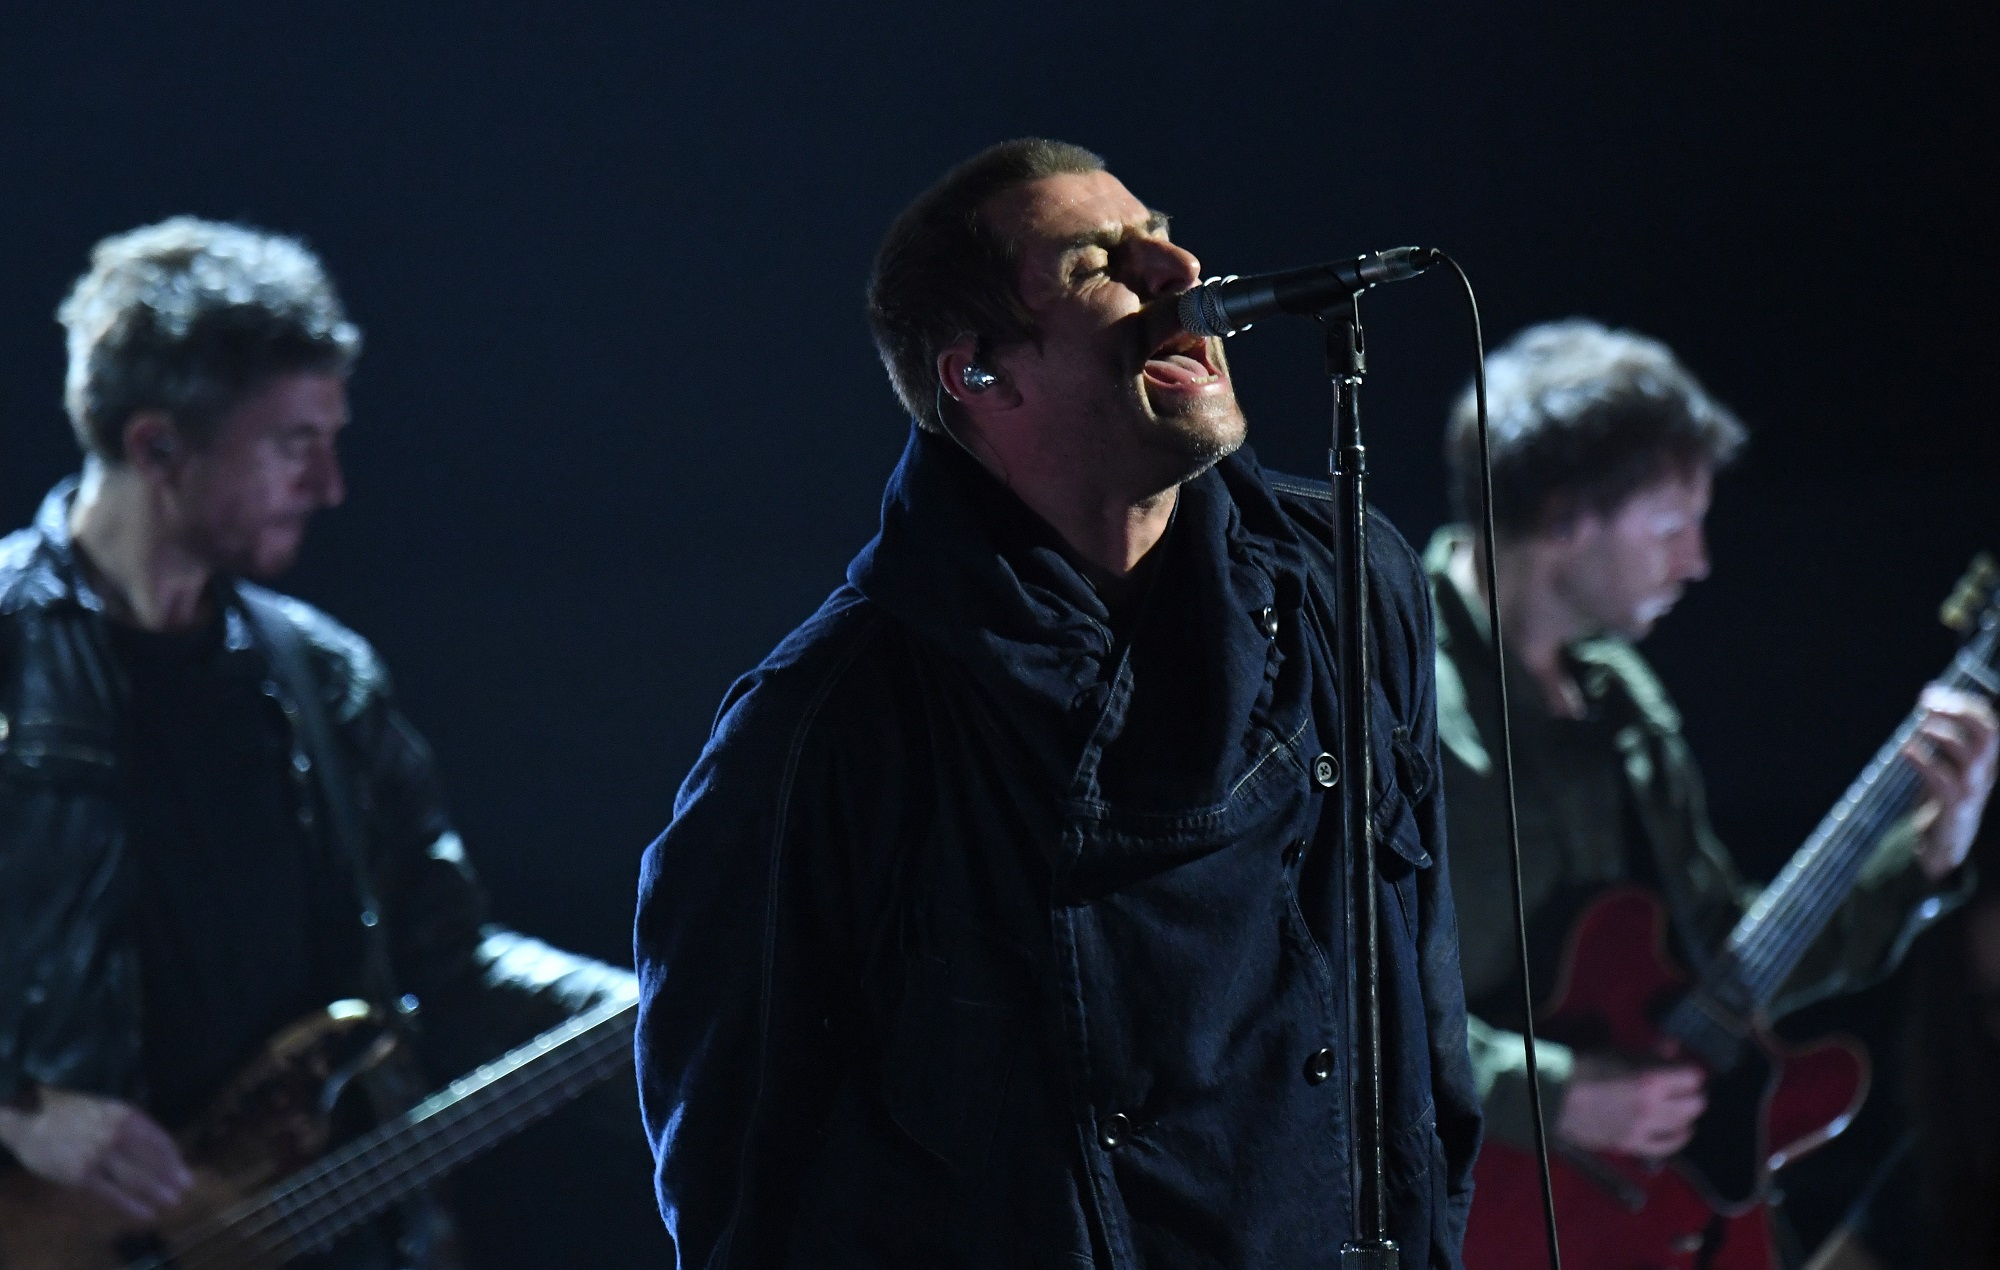 Liam Gallagher responds after fan is reportedly hit by flare during Sheffield gig